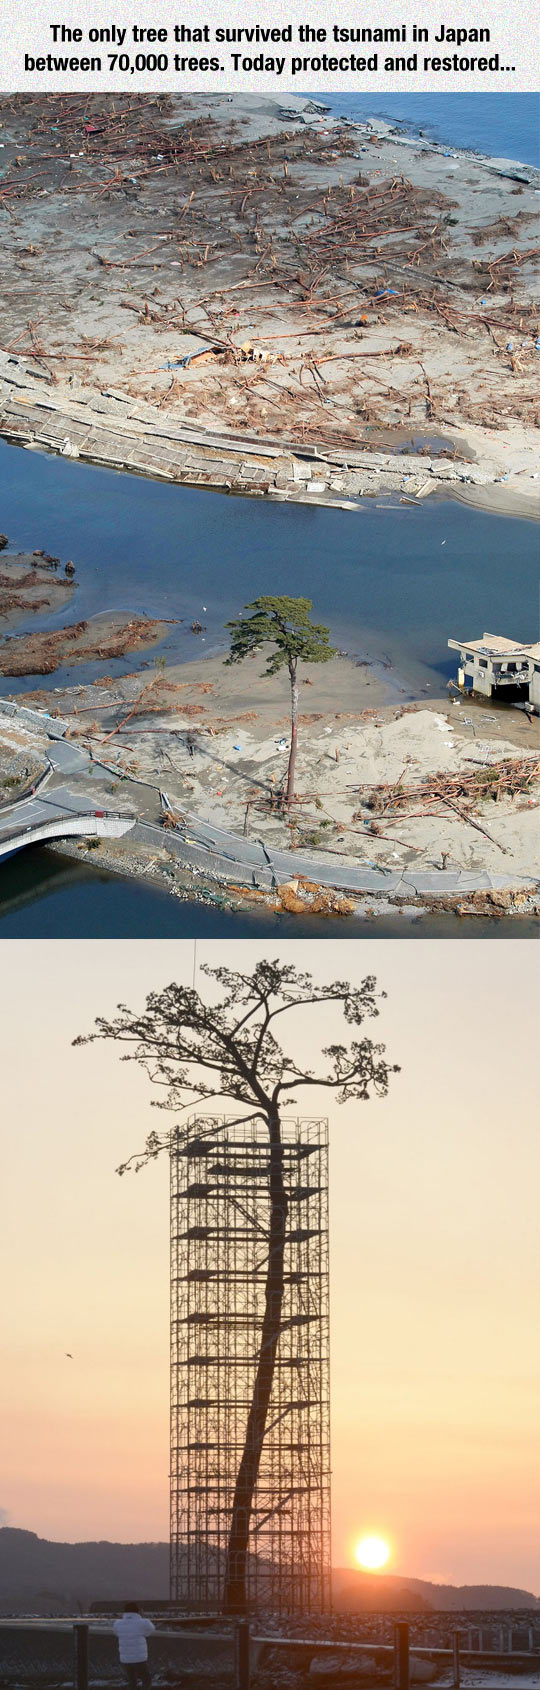 funny-Japan-tree-tsunami-protected